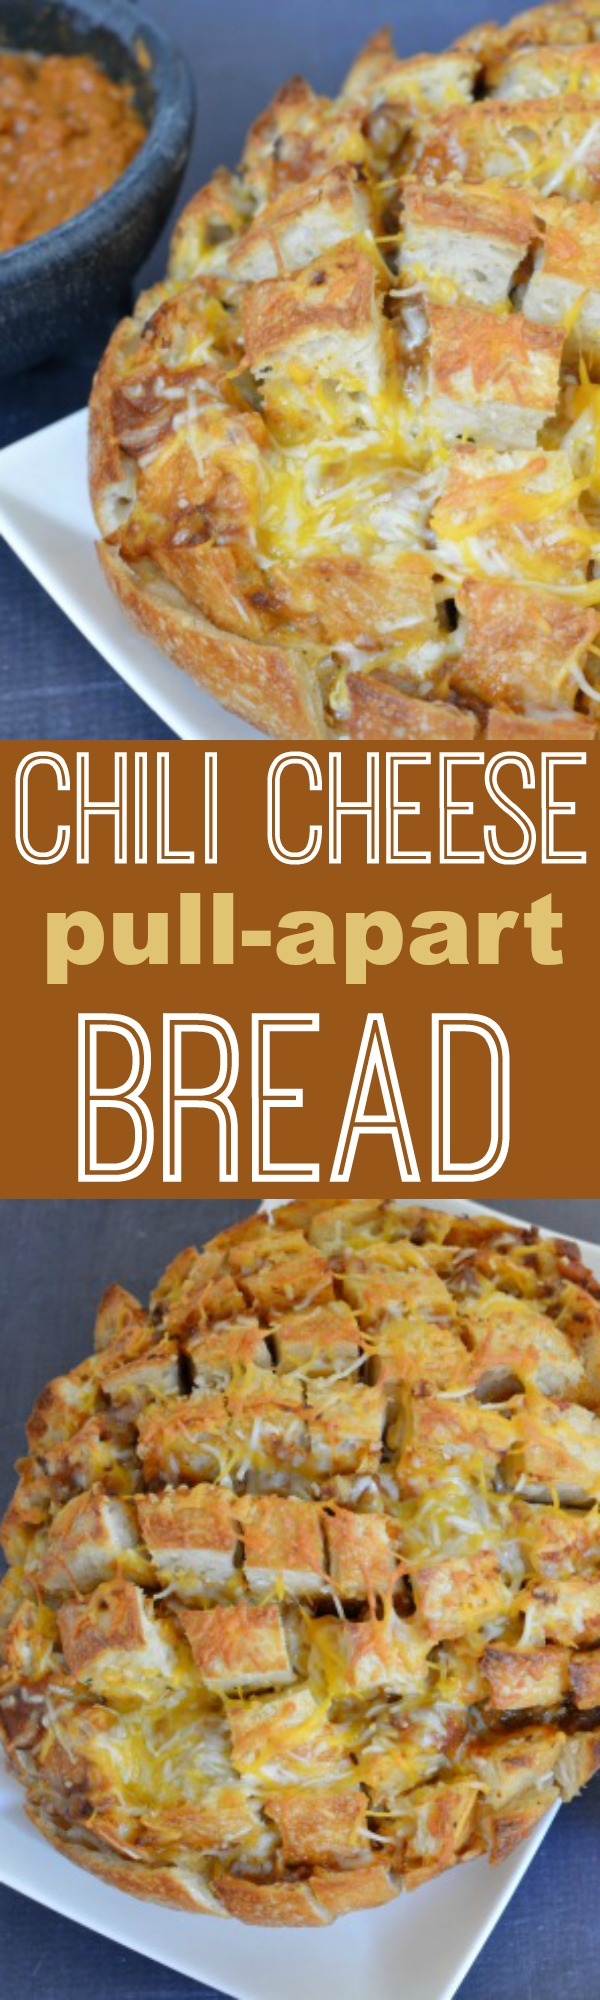 Chili Cheese Pull Apart Bread | Chewy sourdough bread stuffed with cheese chili and taco spiced butter.